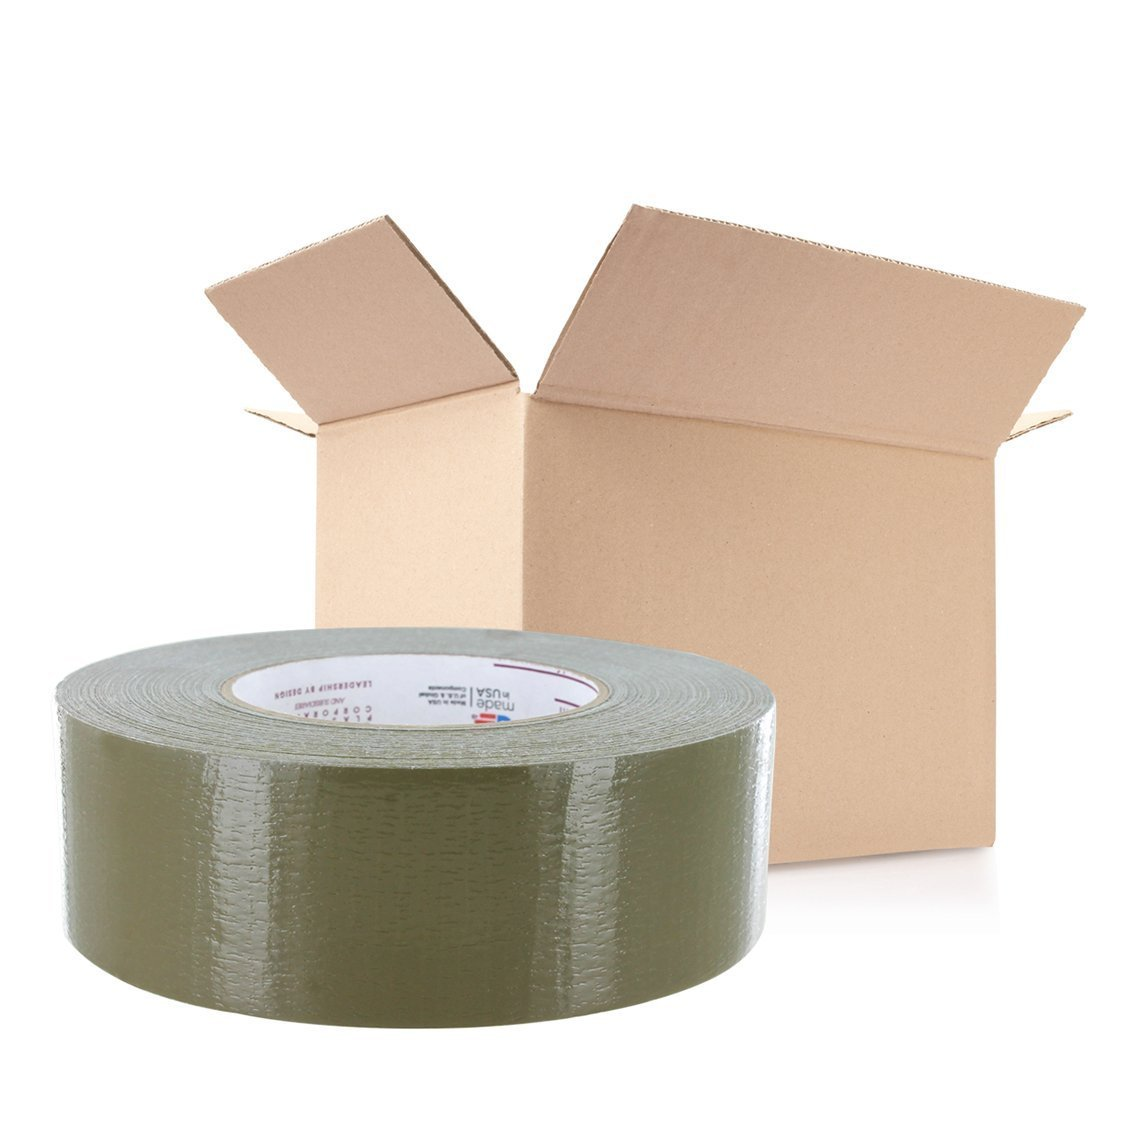 Nashua Duct Tape 2 in x 60 yd Olive Drab 9 mil 24 Pack